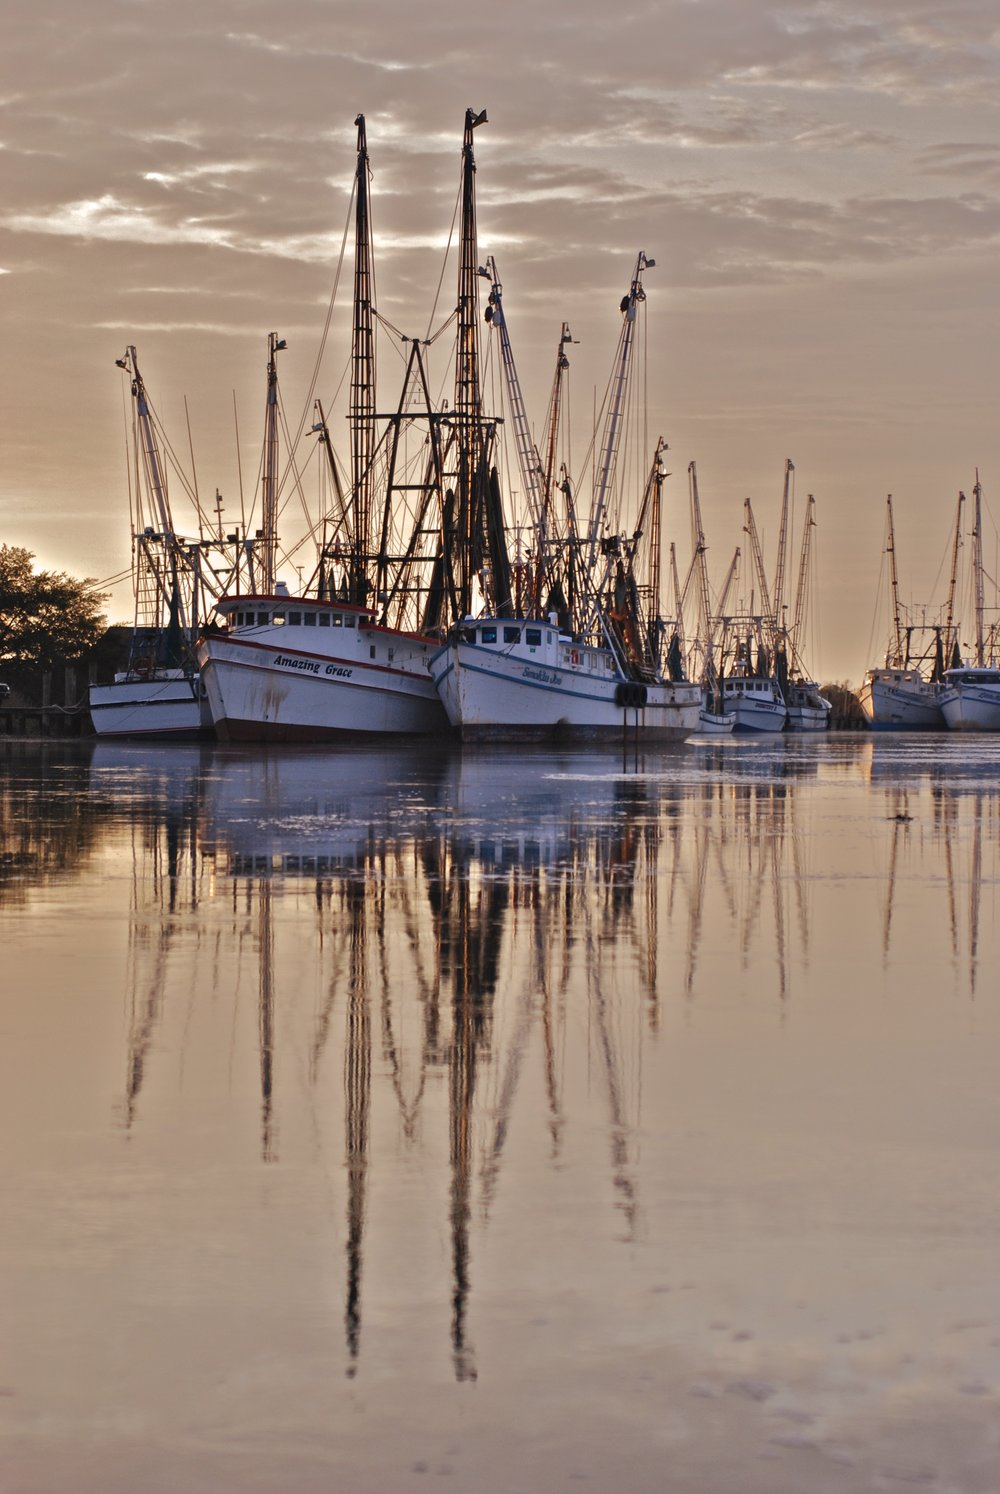 Here's the original from Darien, GA waterfront